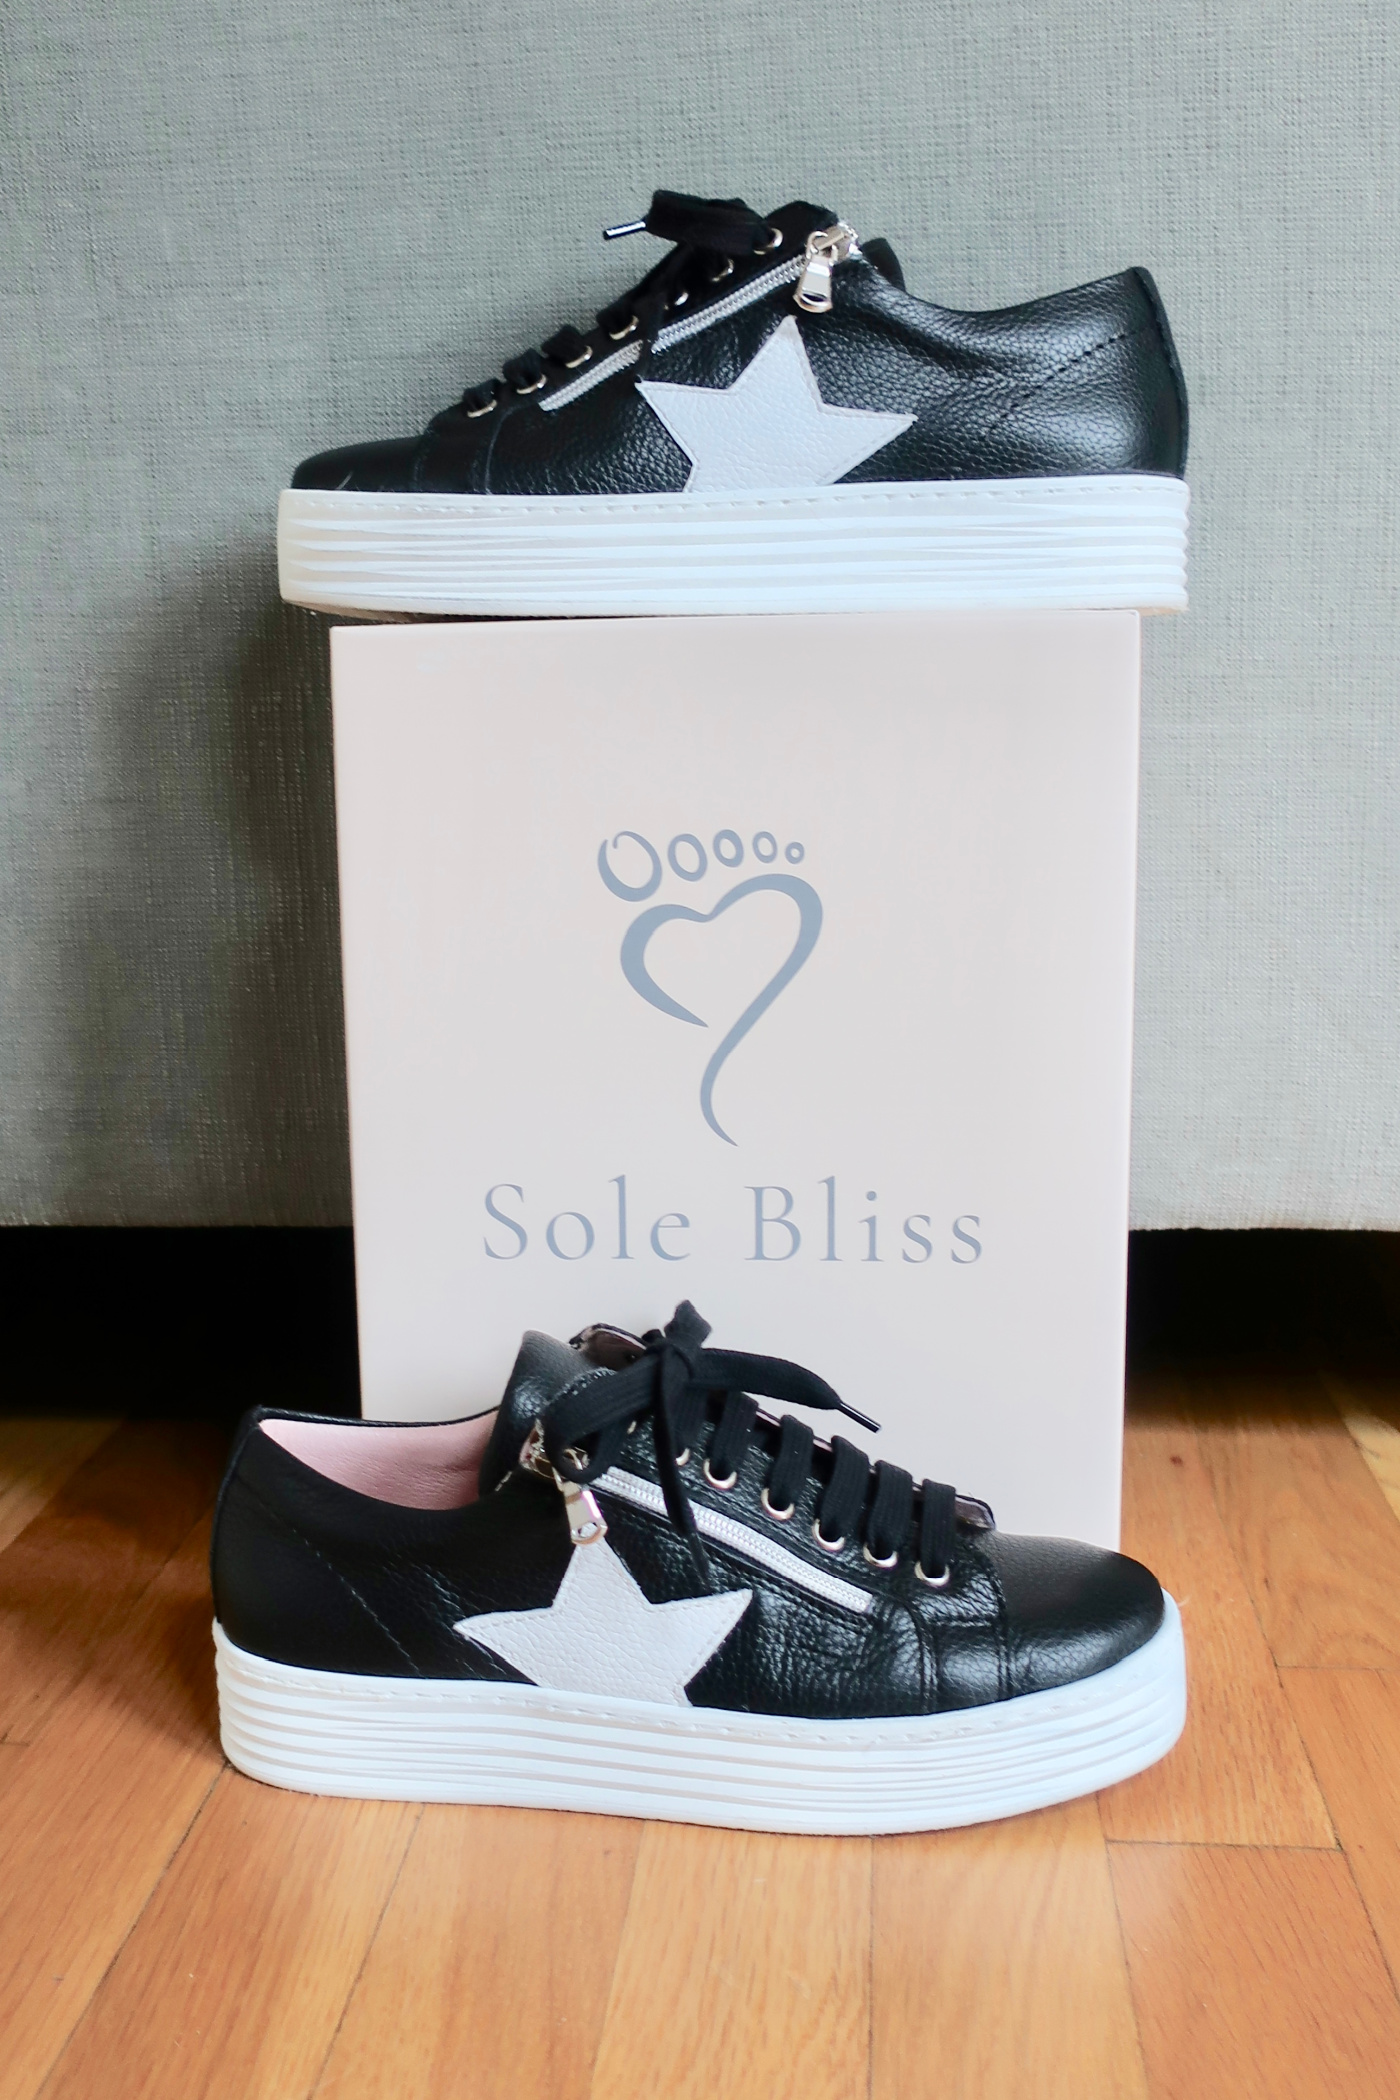 Sole Bliss Miracle Sneaker Review